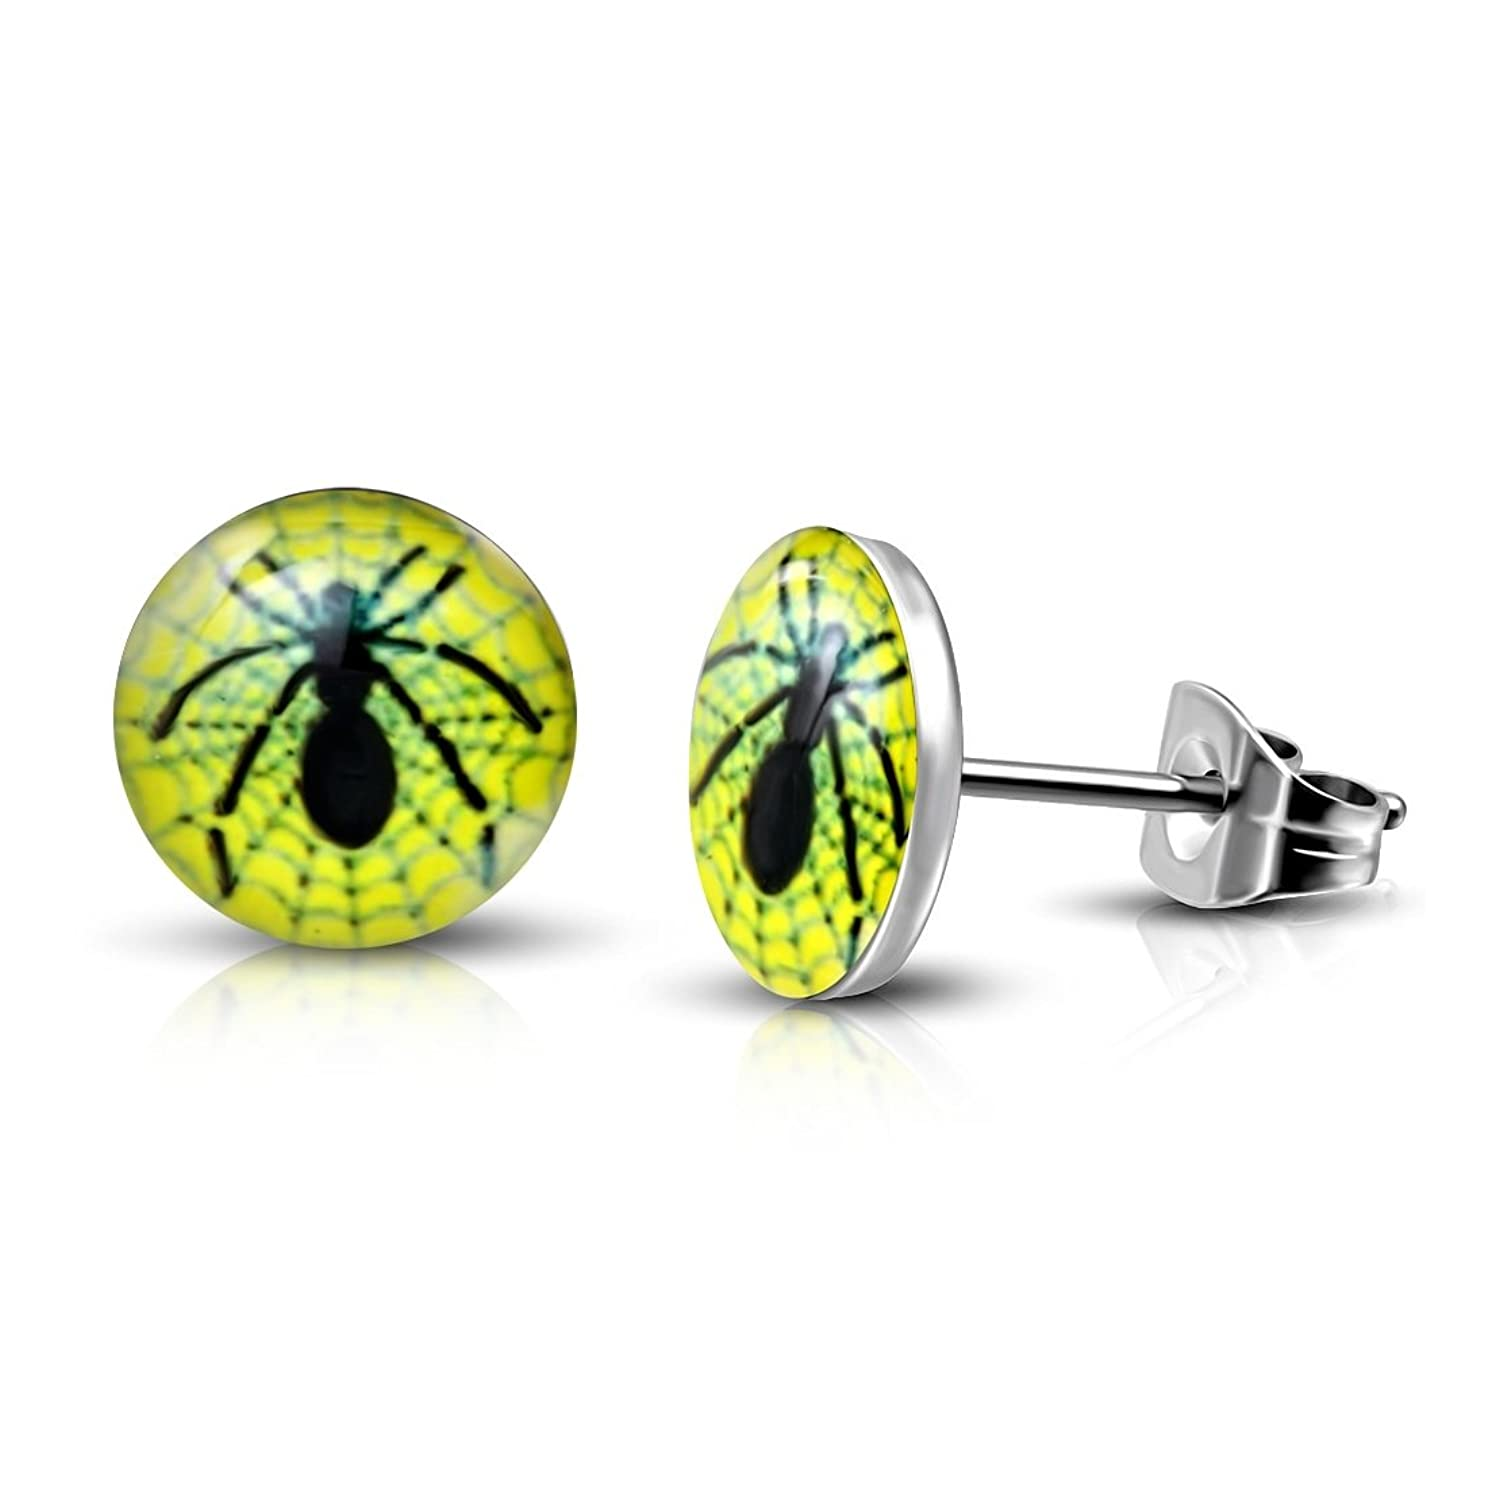 Stainless Steel 3 Color Spider Web Dream Catcher Circle Stud Earrings (pair)